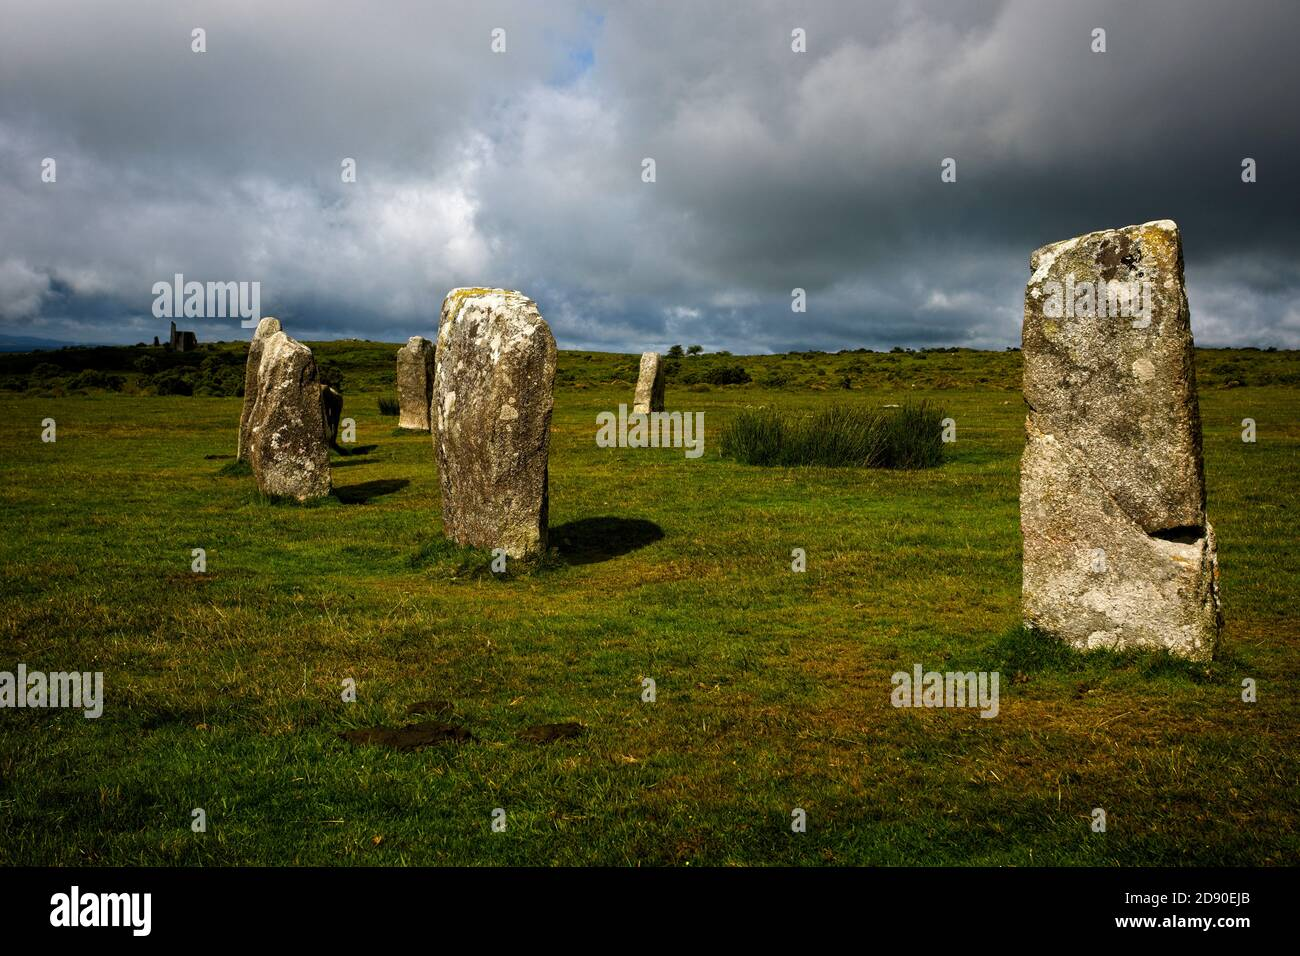 """Part of one of the """"Hurlers"""" Stone Circles, Minions, Cornwall, England, UK. Stock Photo"""